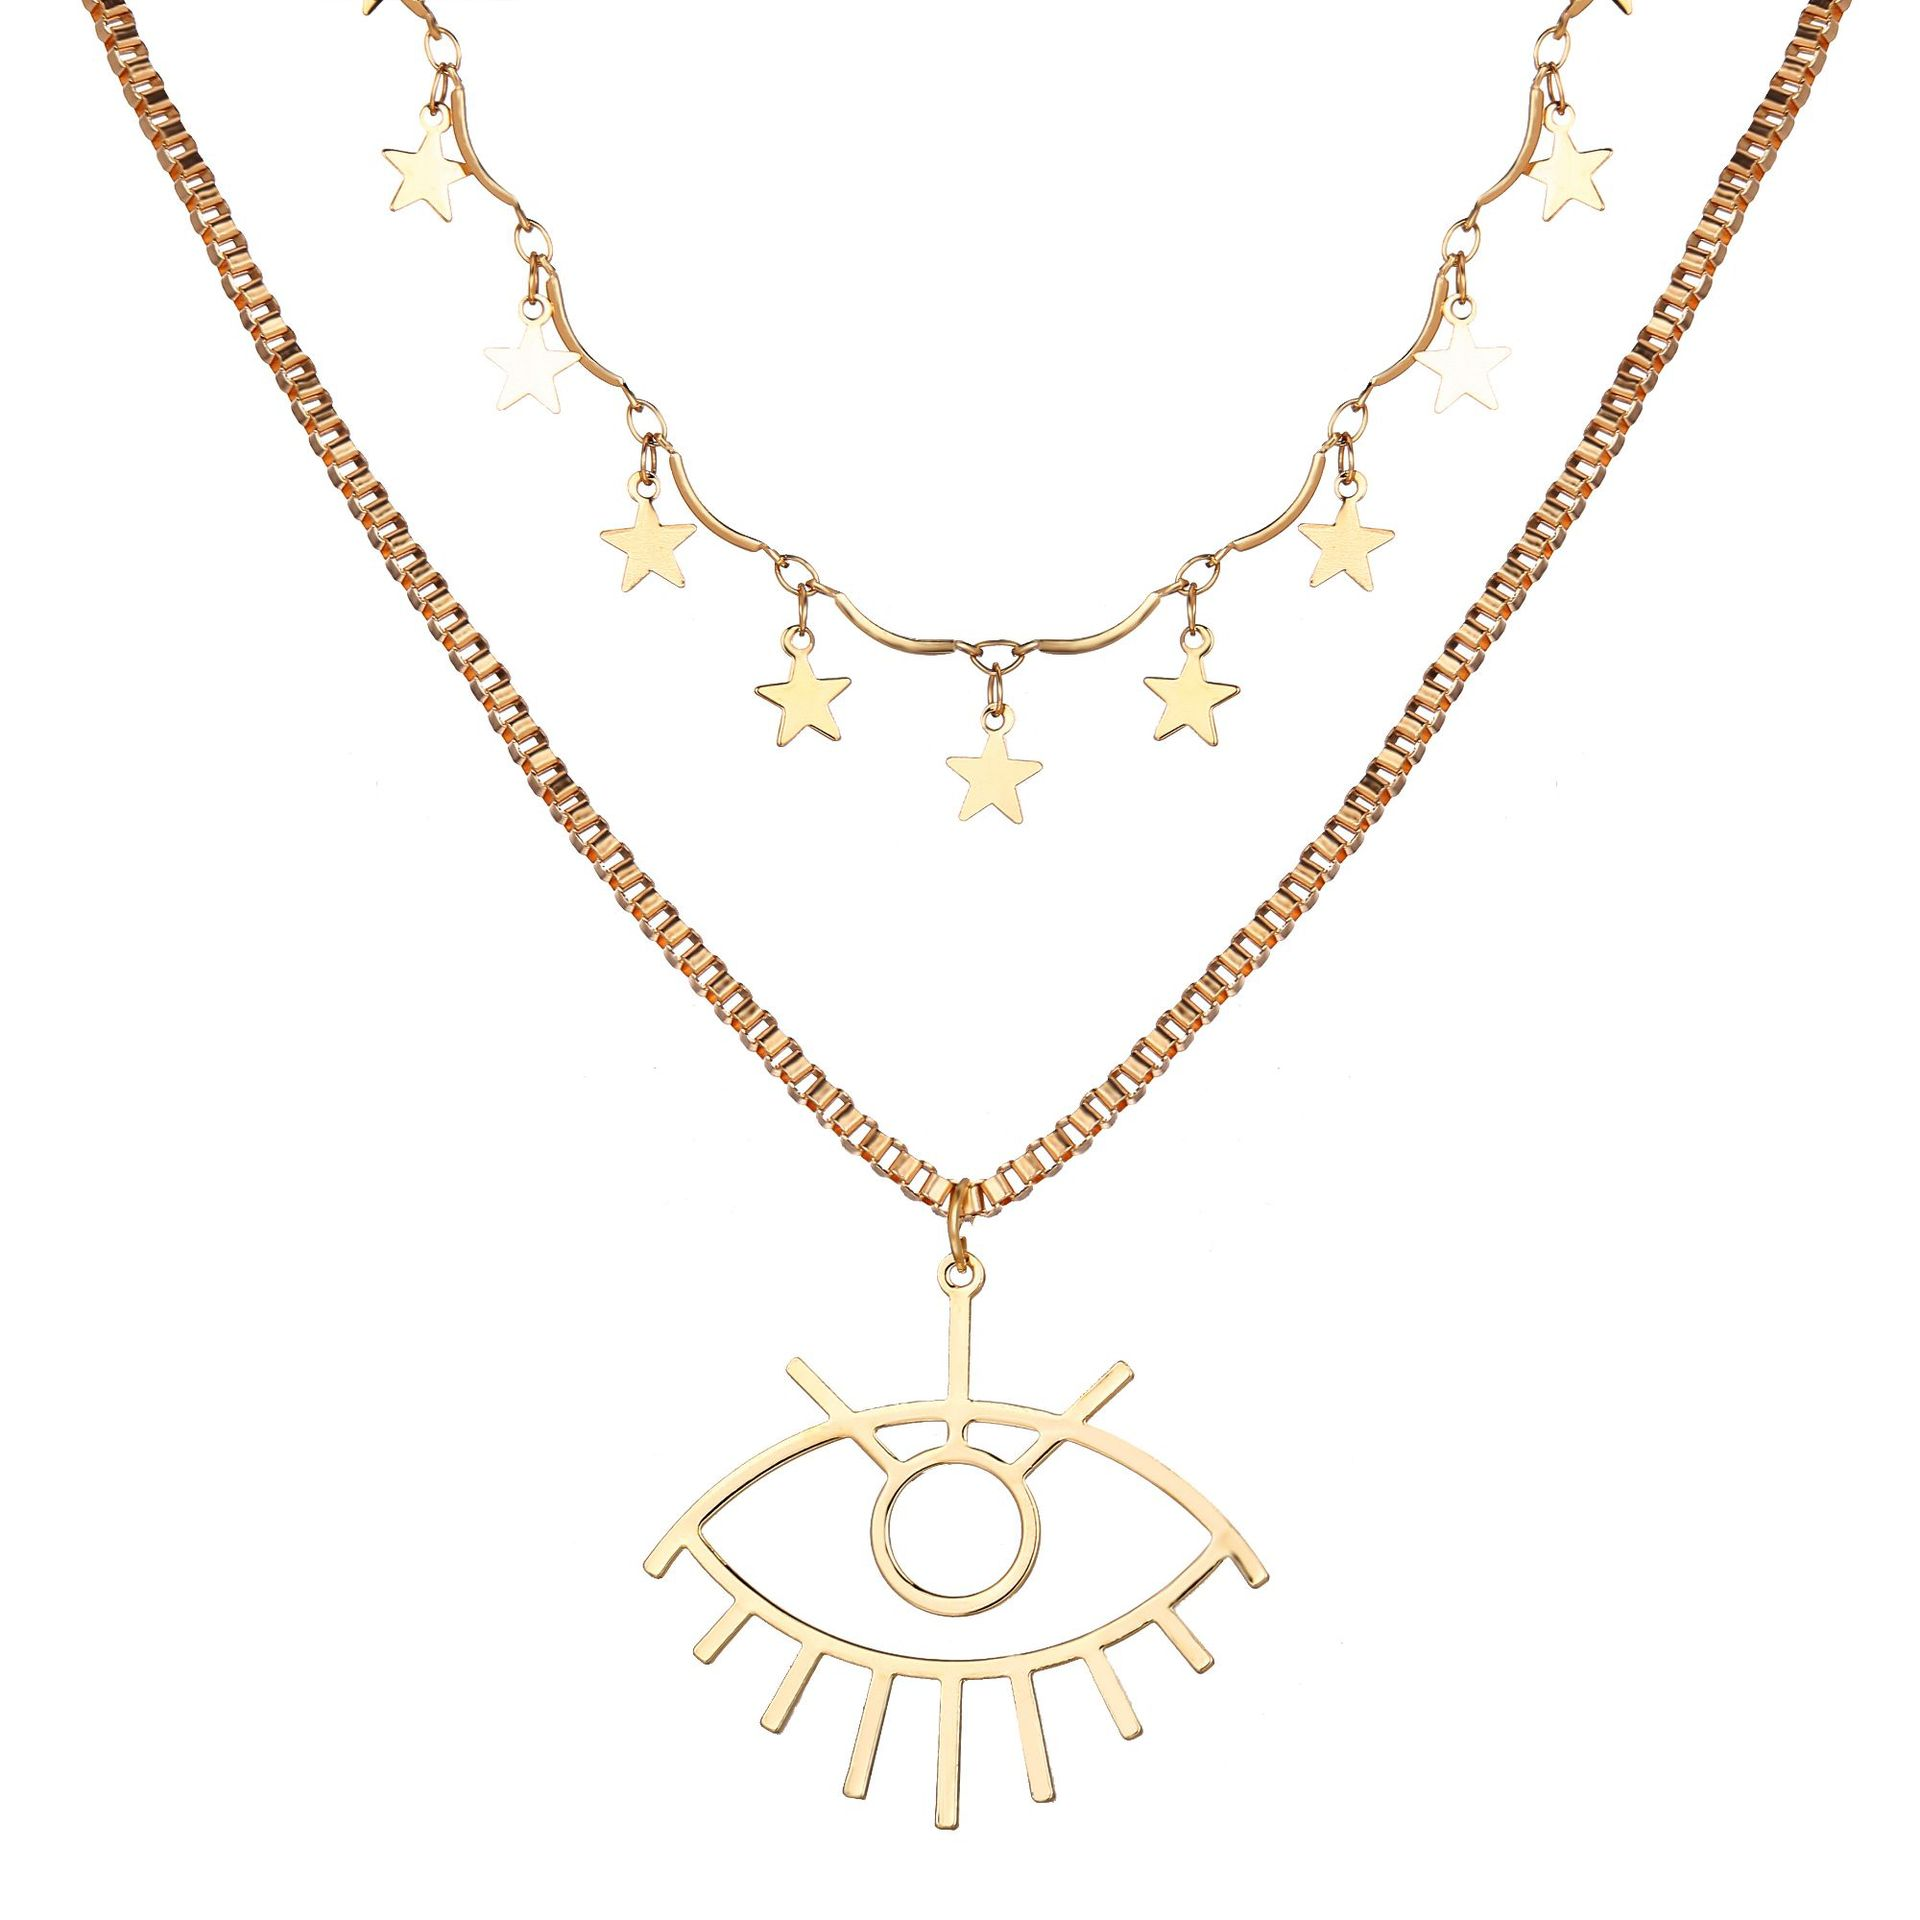 Bohemian Multi Layered Necklace for Women Vintage Eye Star Pendant Necklace Geometric Collier Collares